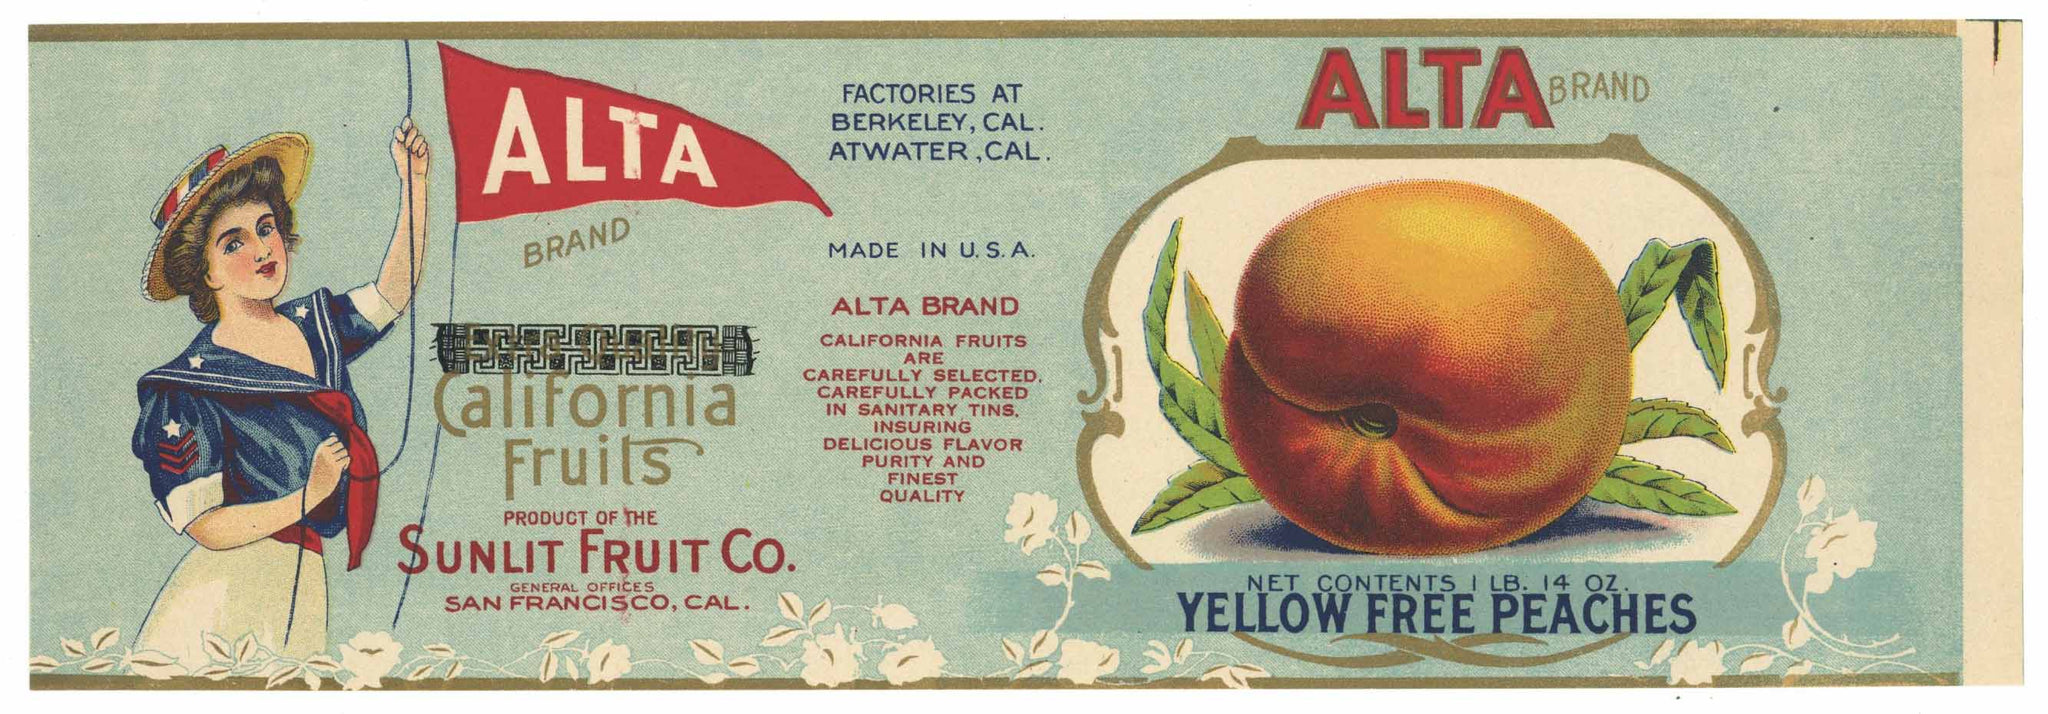 Alta Brand Vintage Peach Can Label